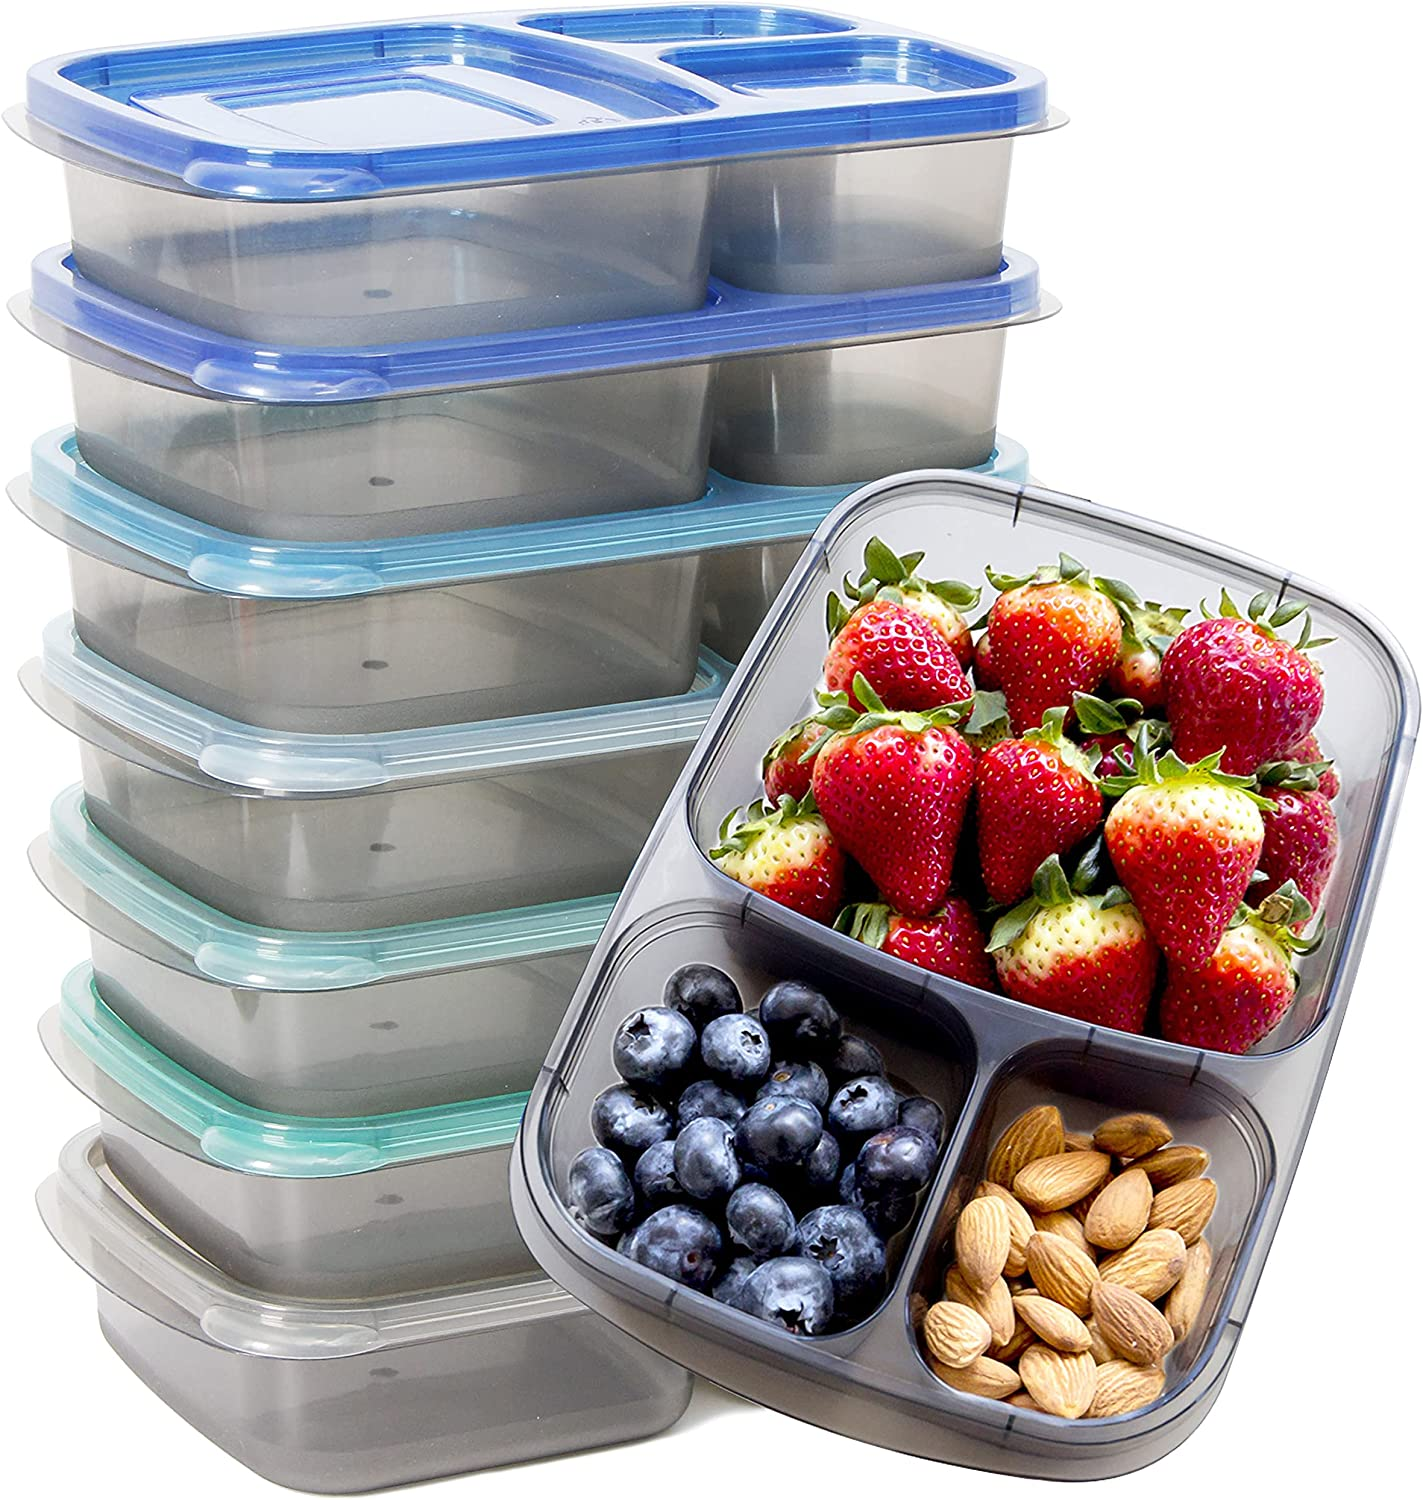 Youngever 7 Sets Bento Lunch Box, Meal Prep Containers, Reusable 3 Compartment Plastic Divided Food Storage Container Boxes